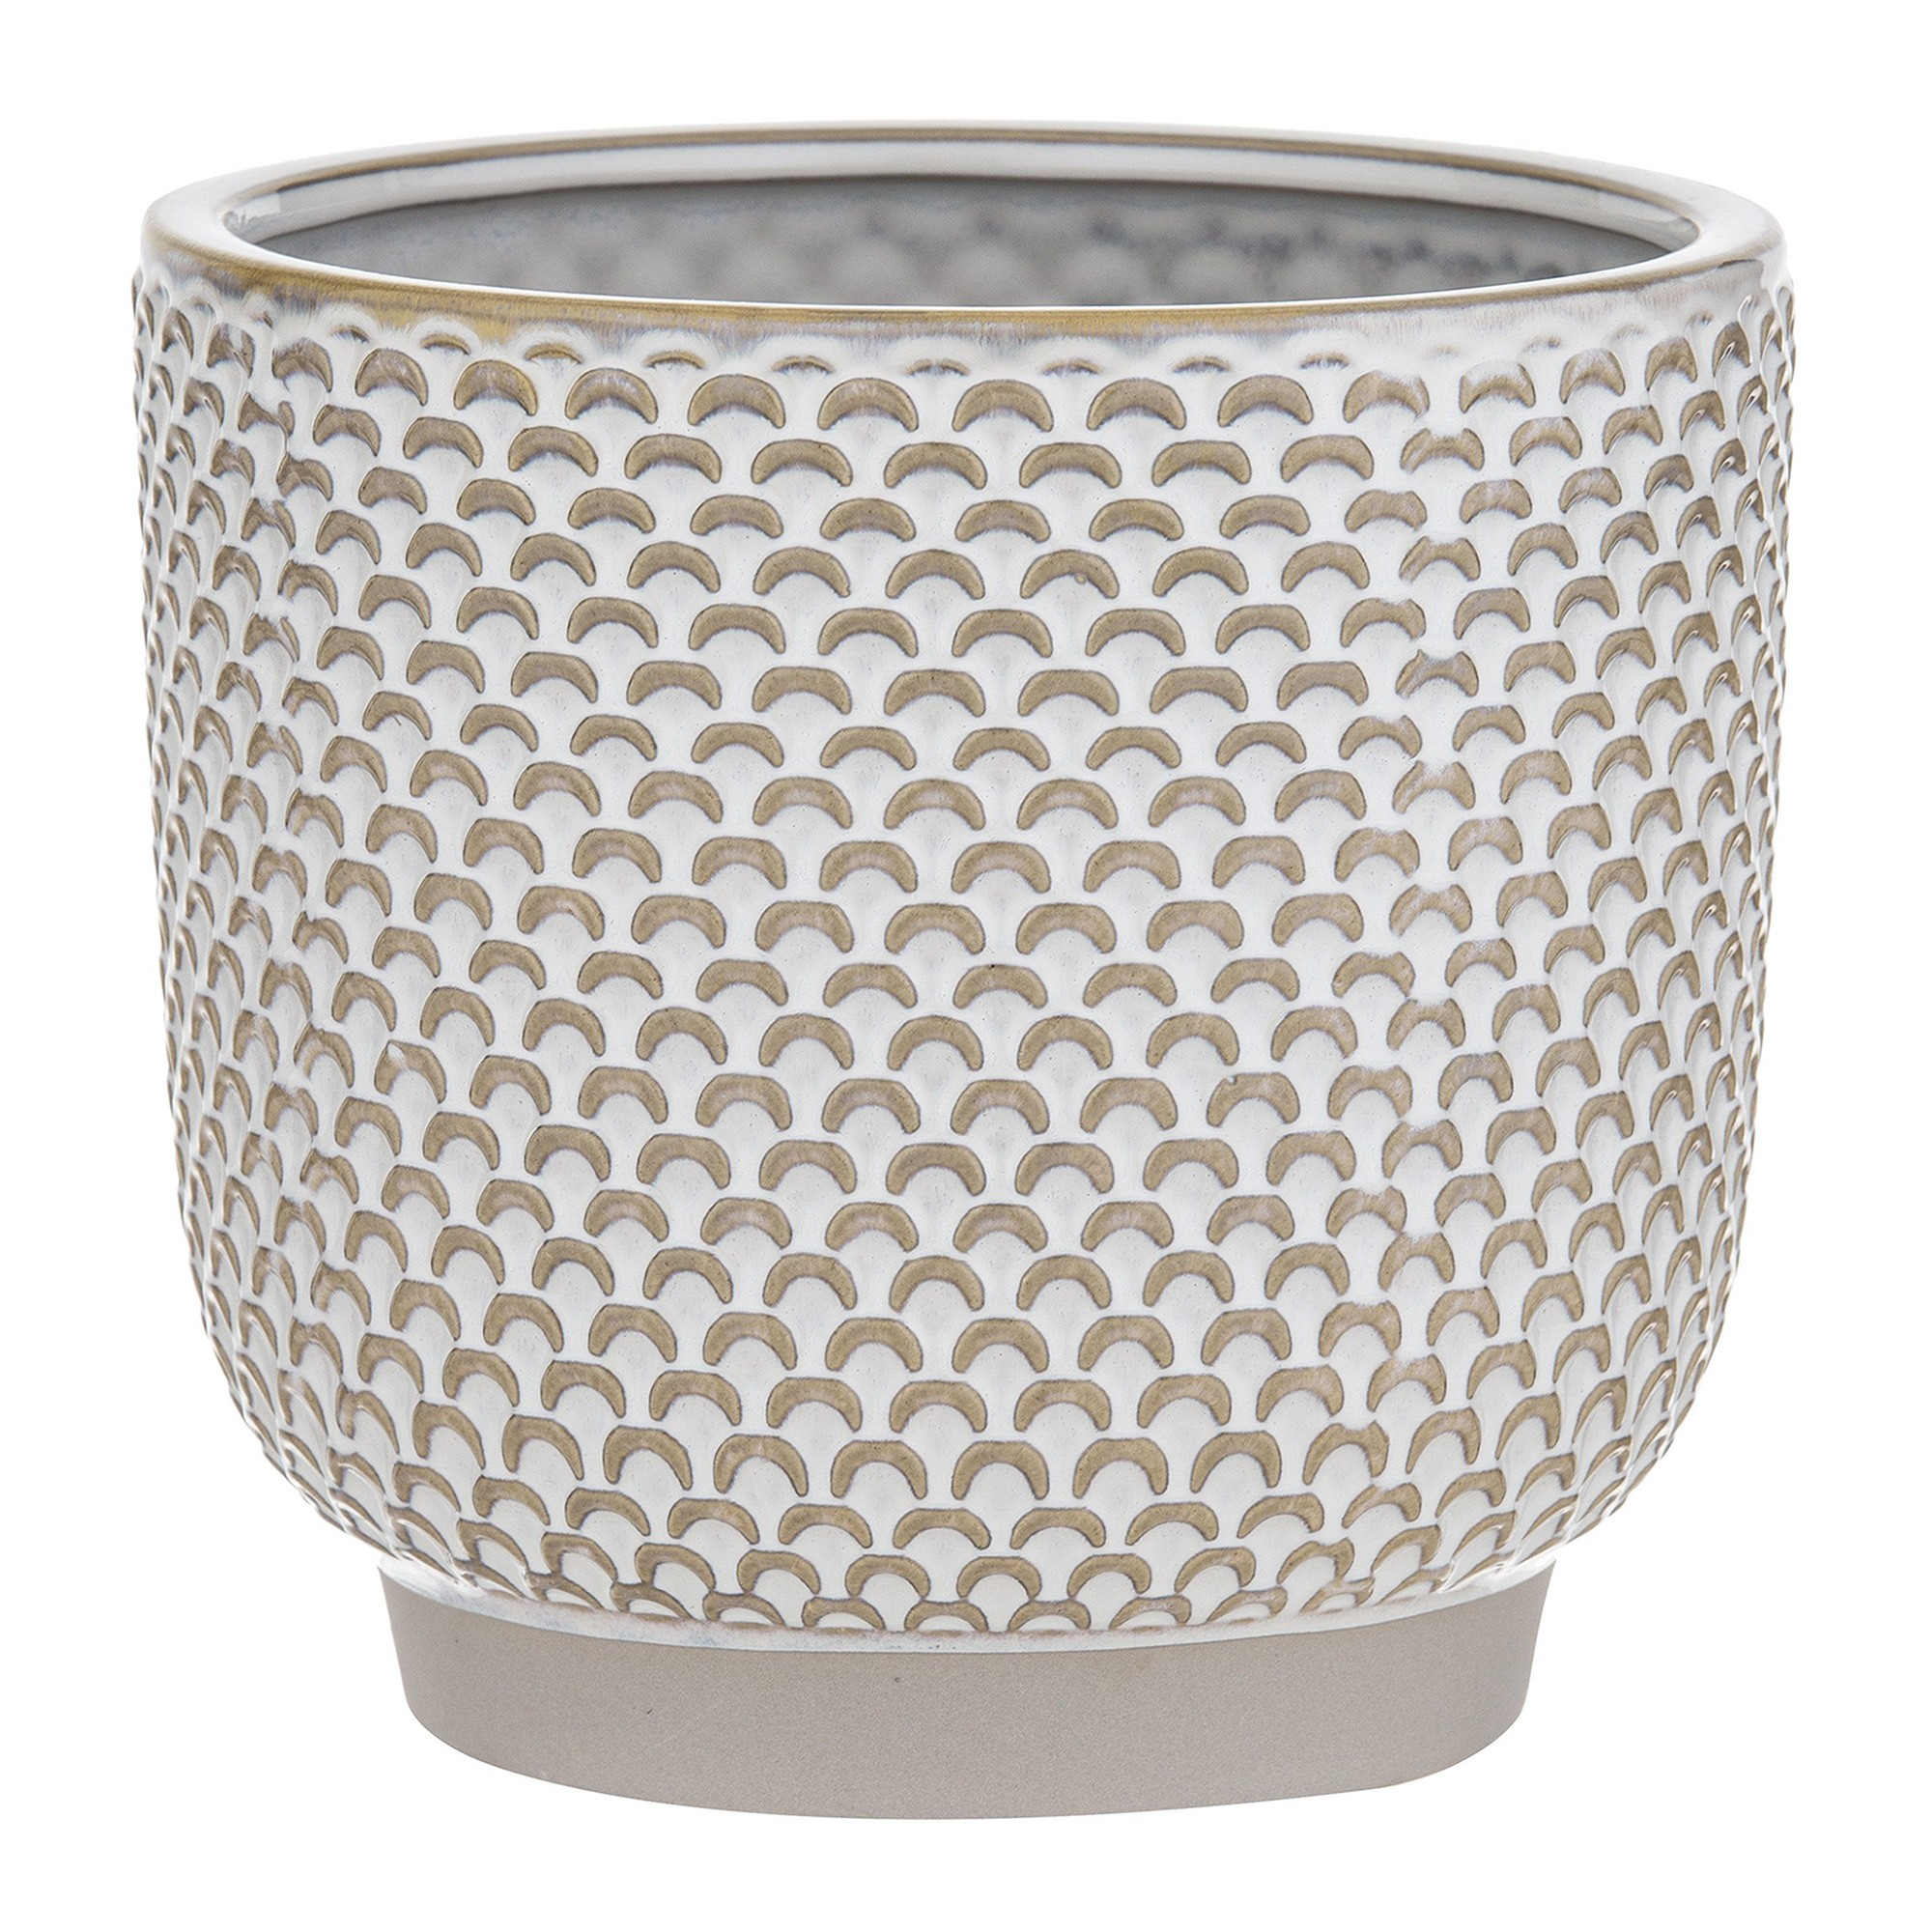 Alina Ceramic Pot, Cream